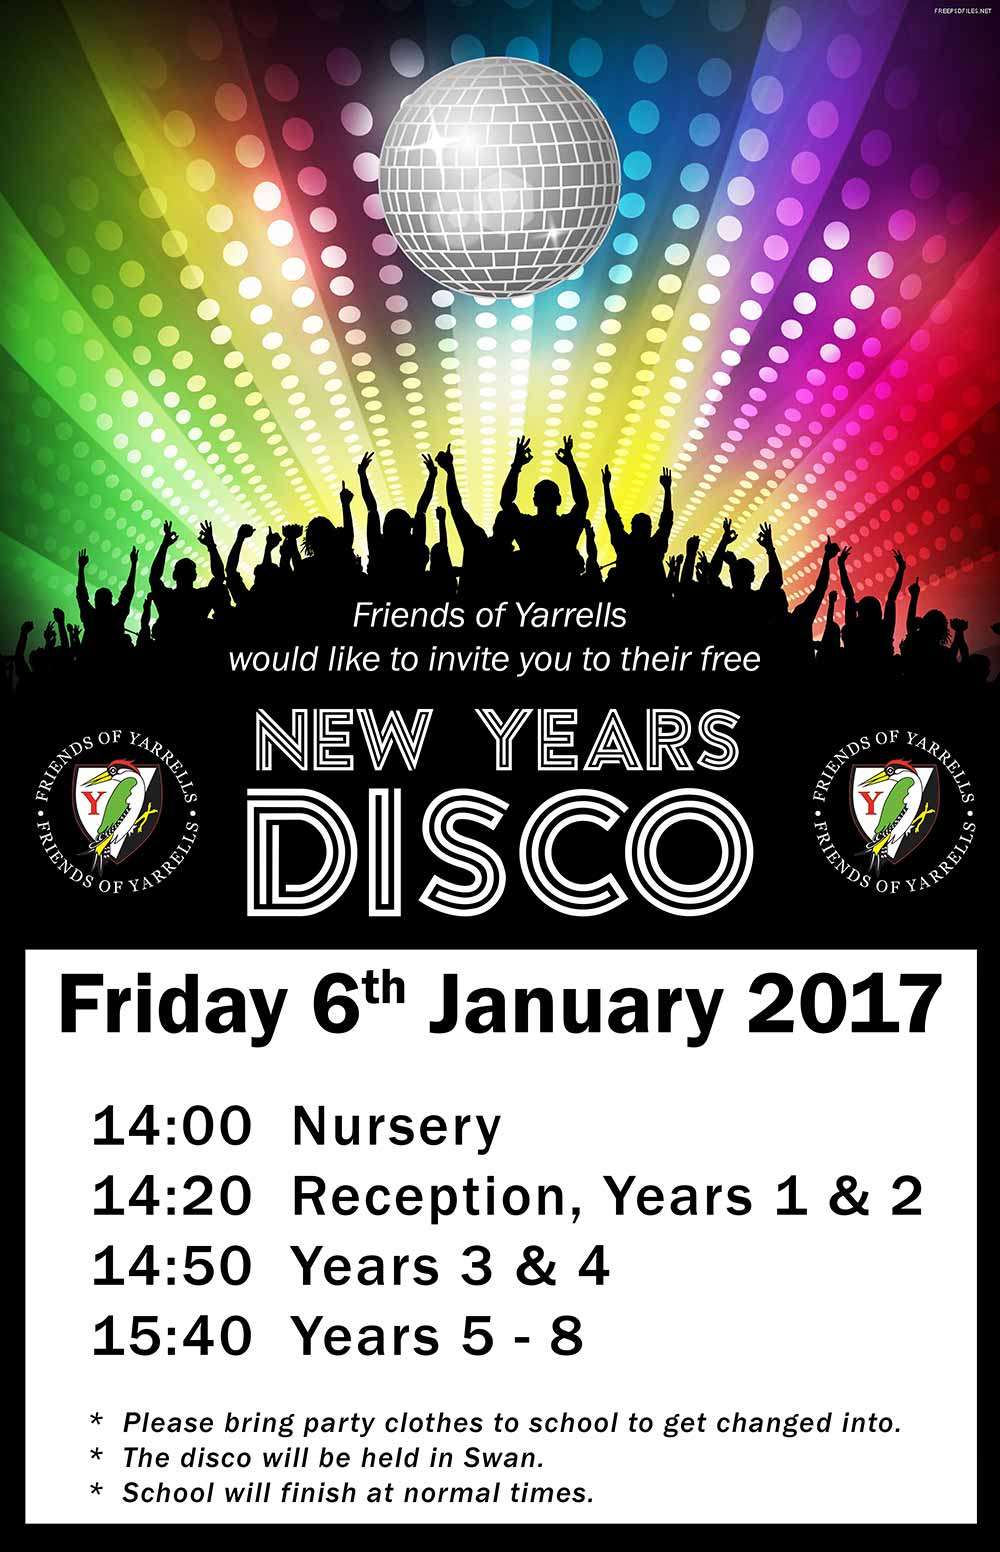 Friends Of Yarrells Invite You To Their New Year Disco